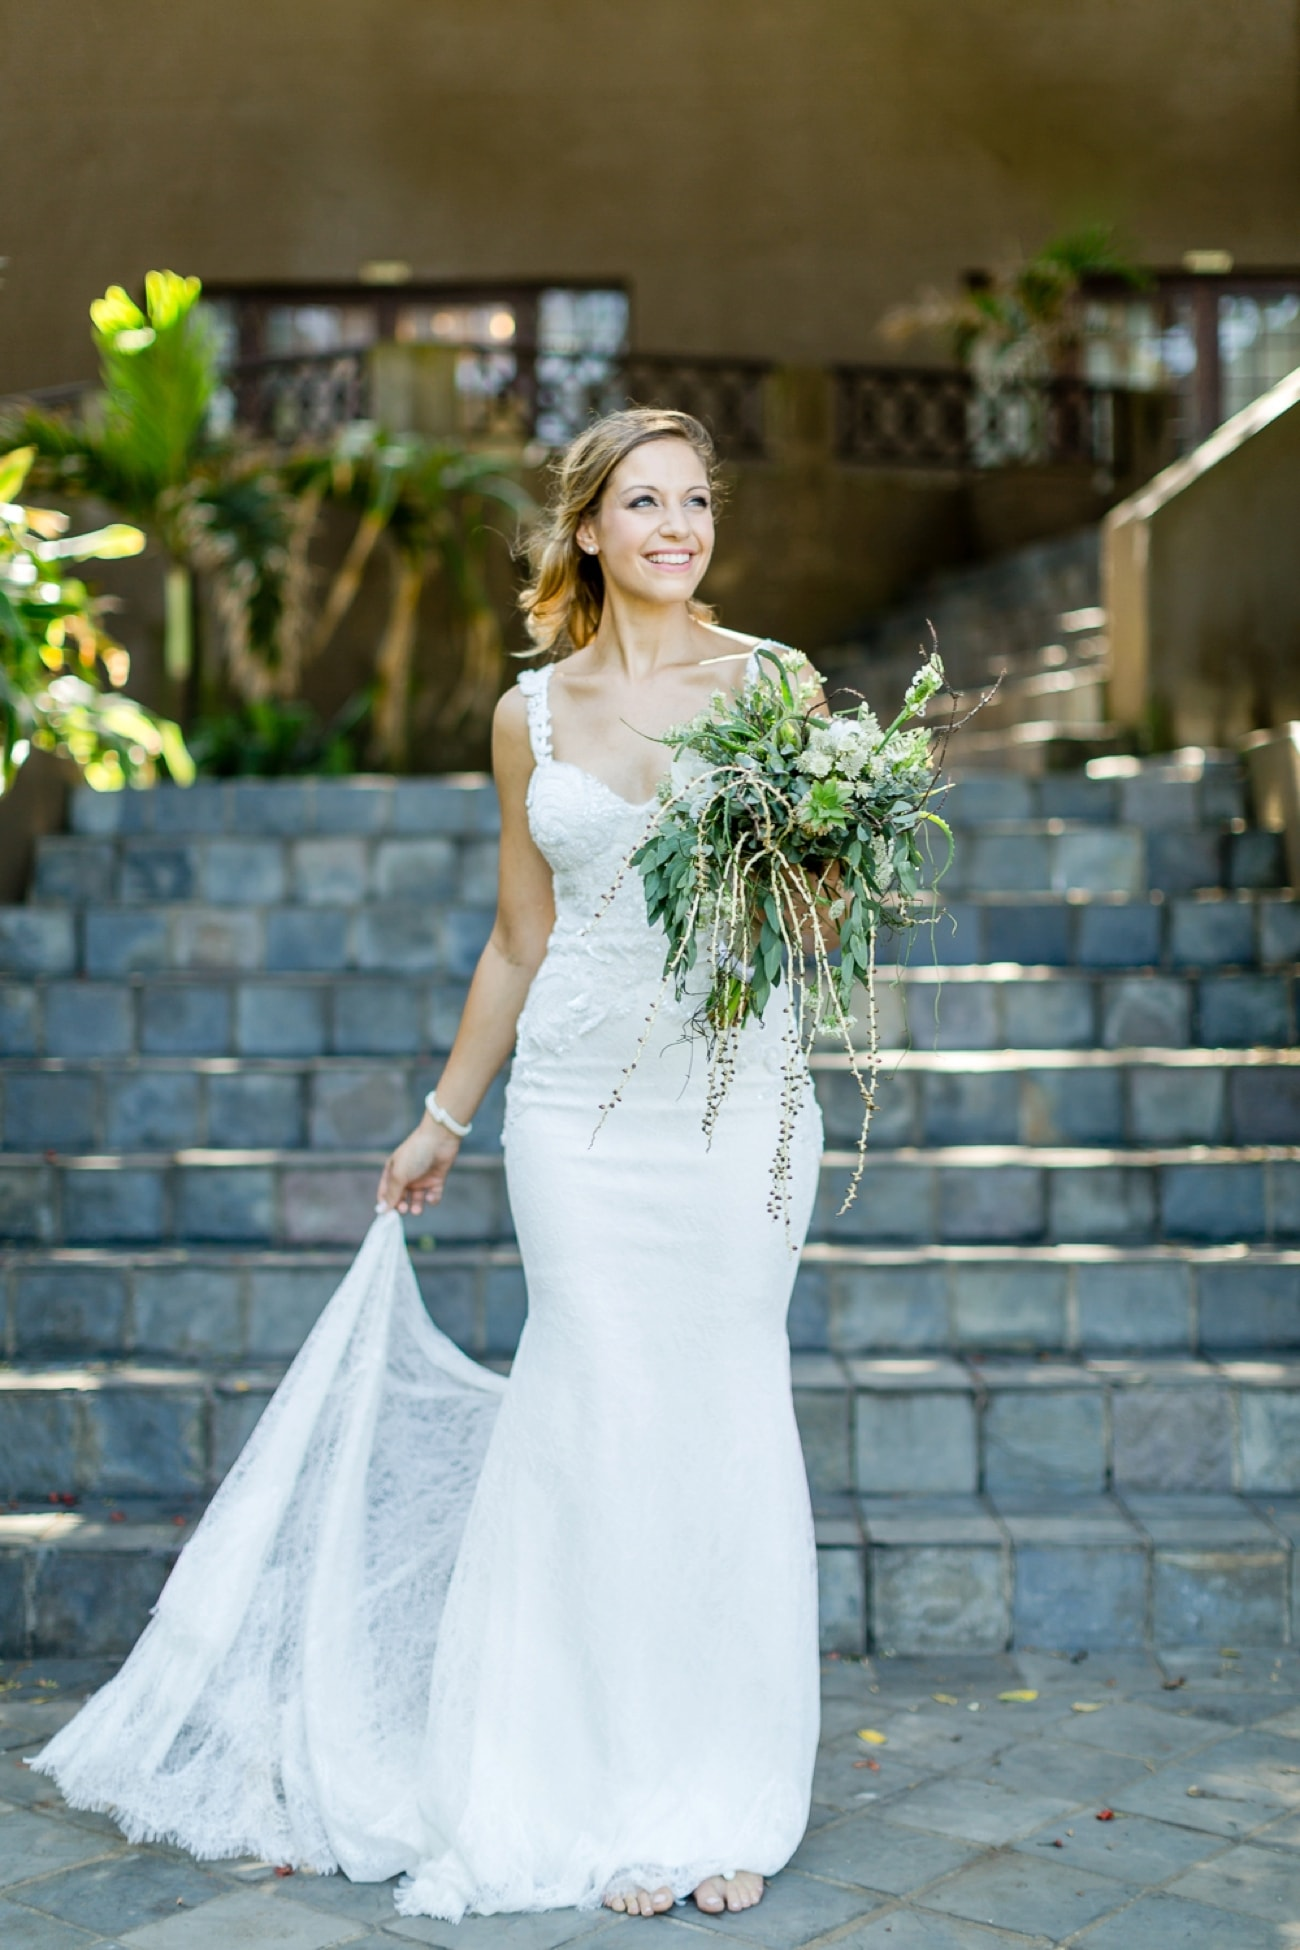 Simple Elegant Wedding Dress with Lace Embroidery | Credit: Grace Studios / Absolute Perfection